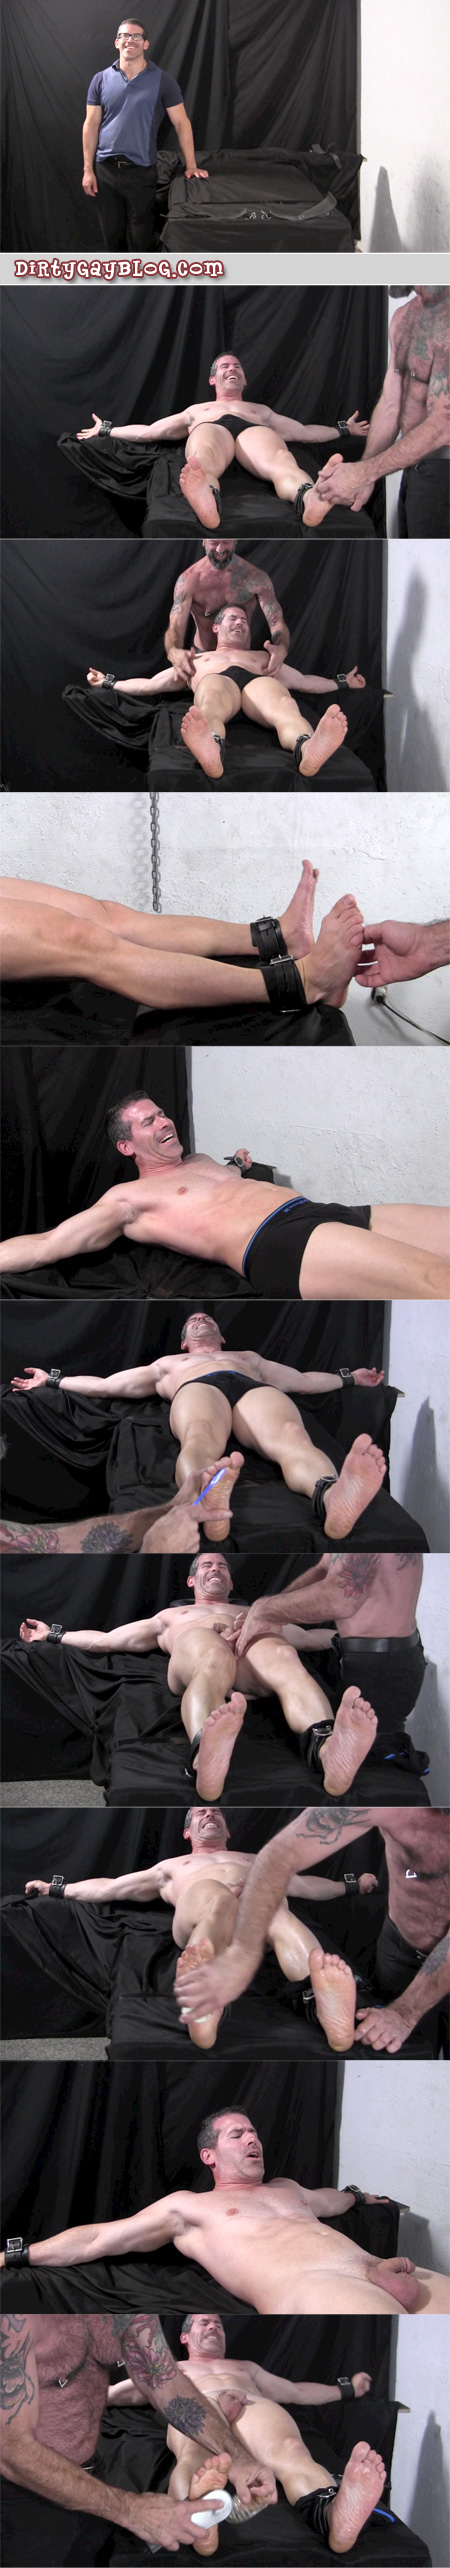 Beefy straight guy bound and tickle tortured.